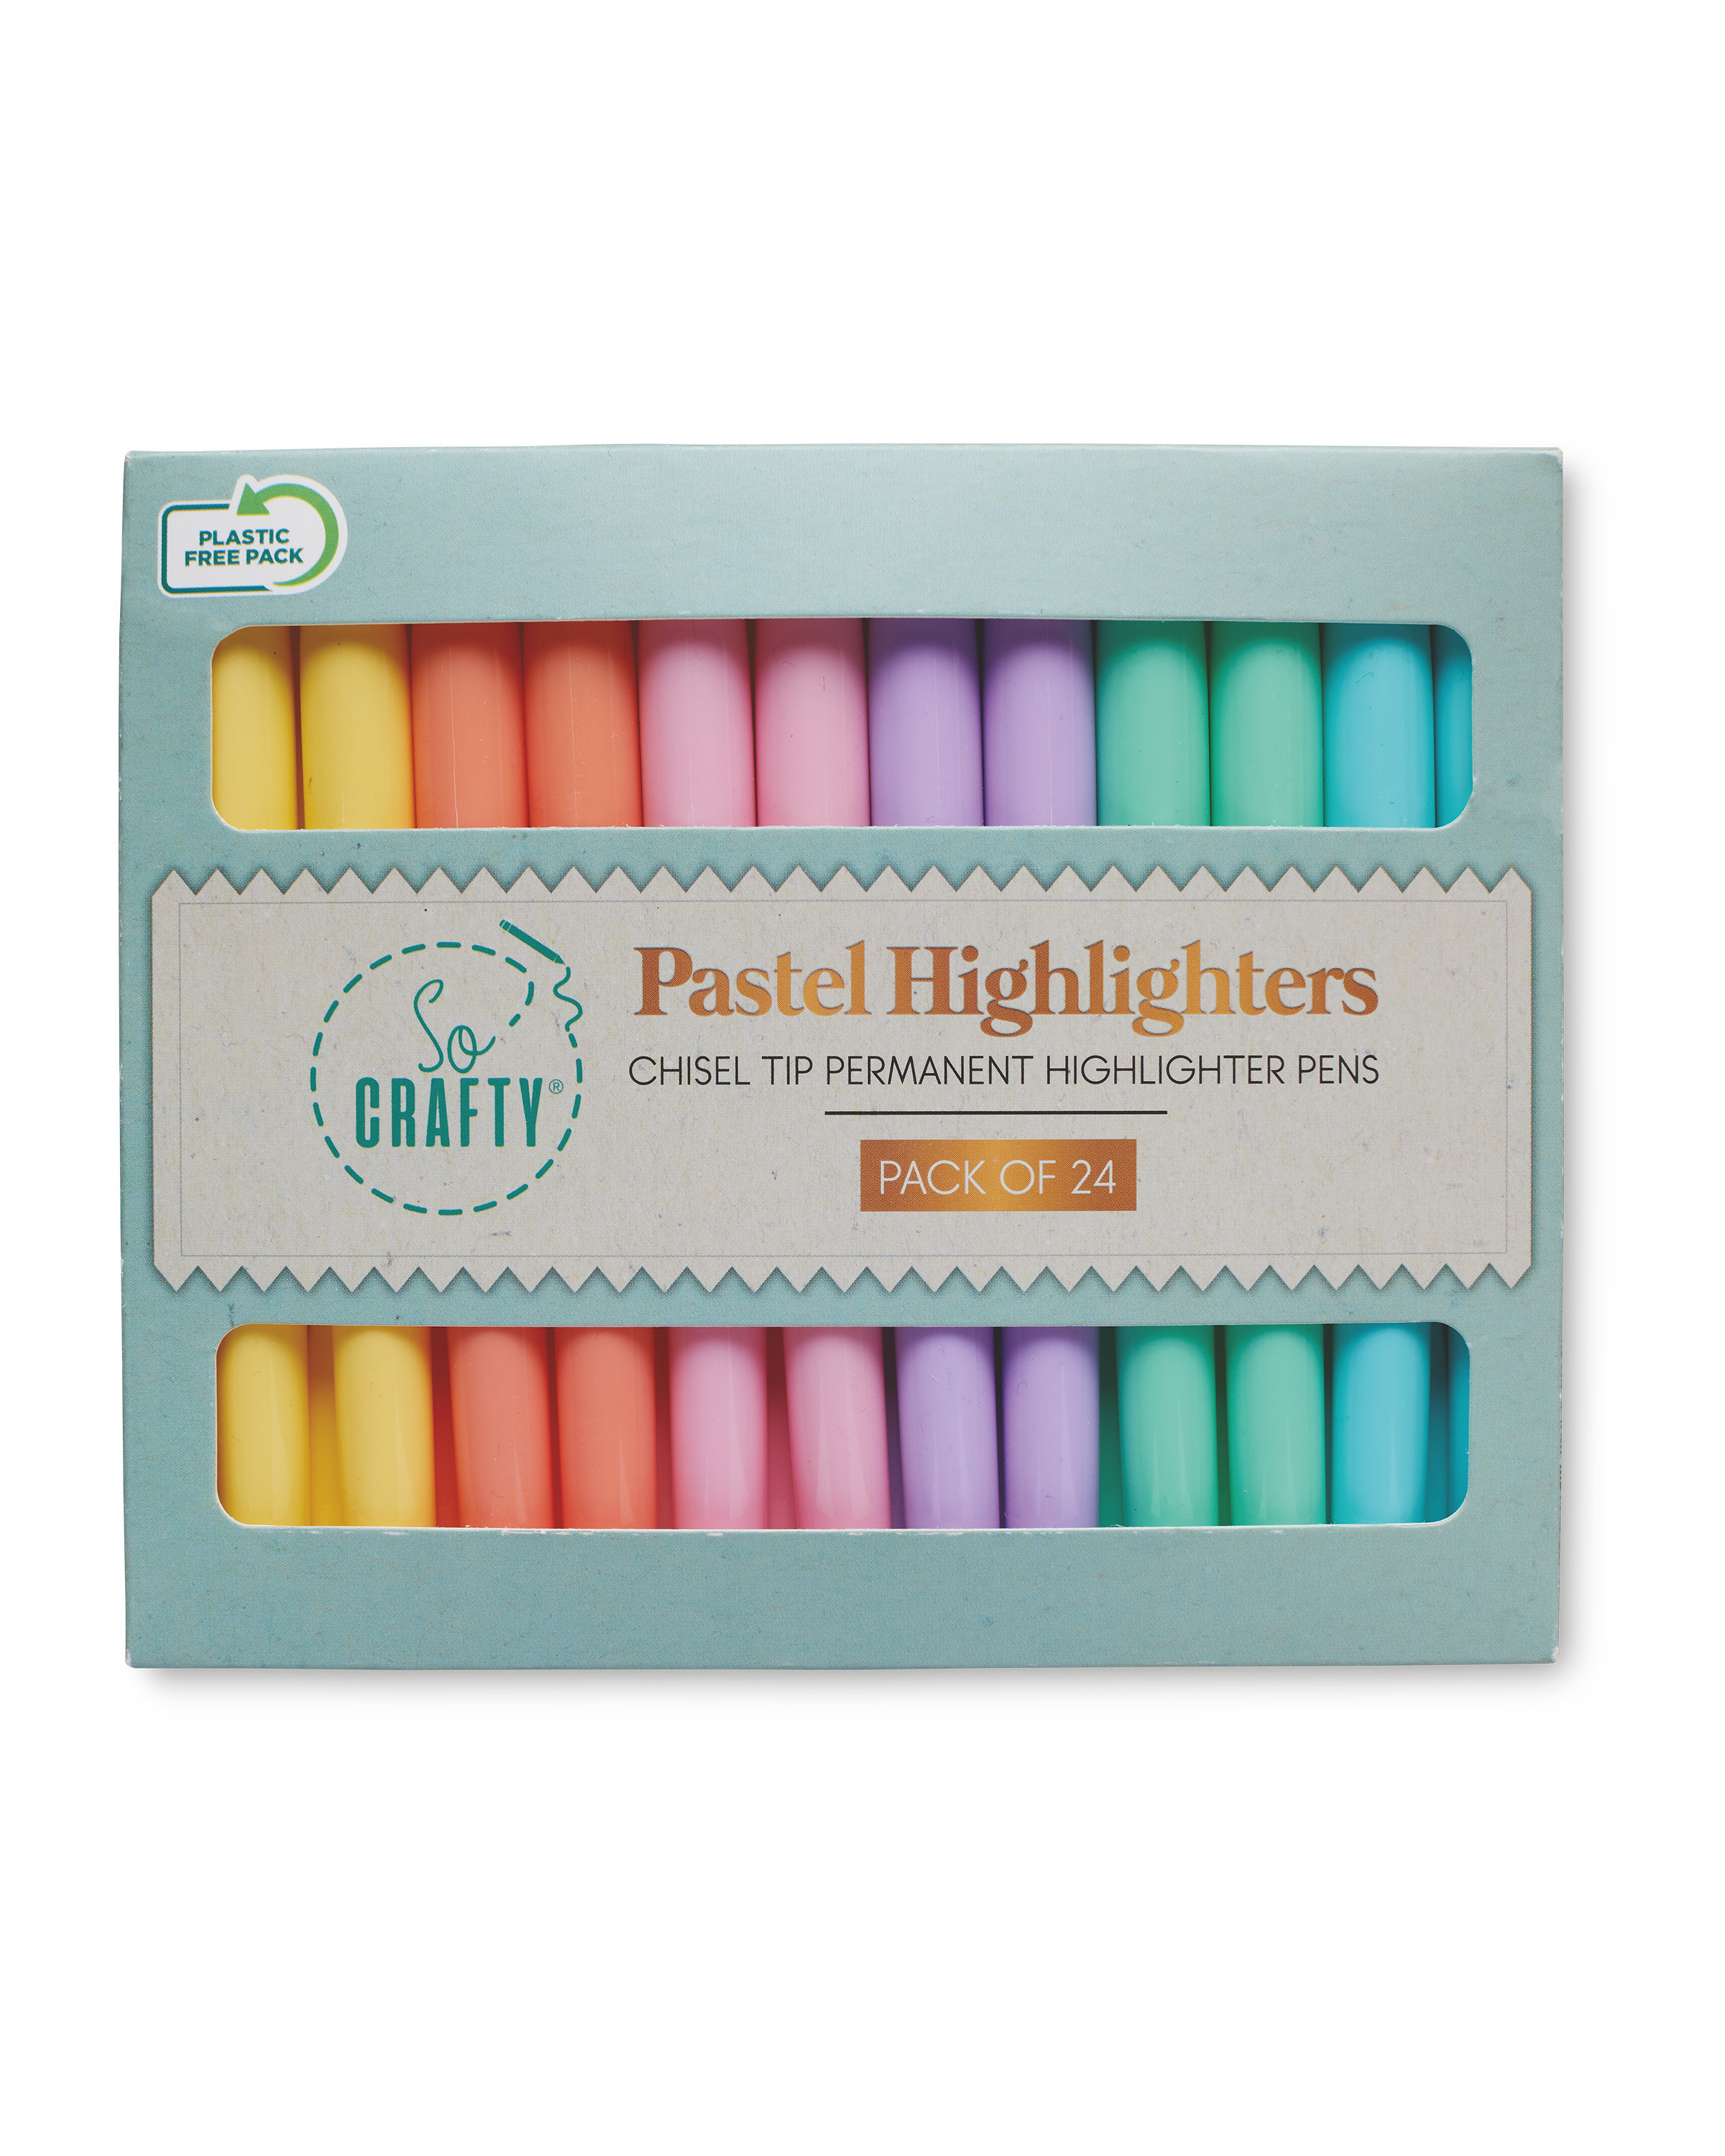 Pastel Highlighters 24 Pack